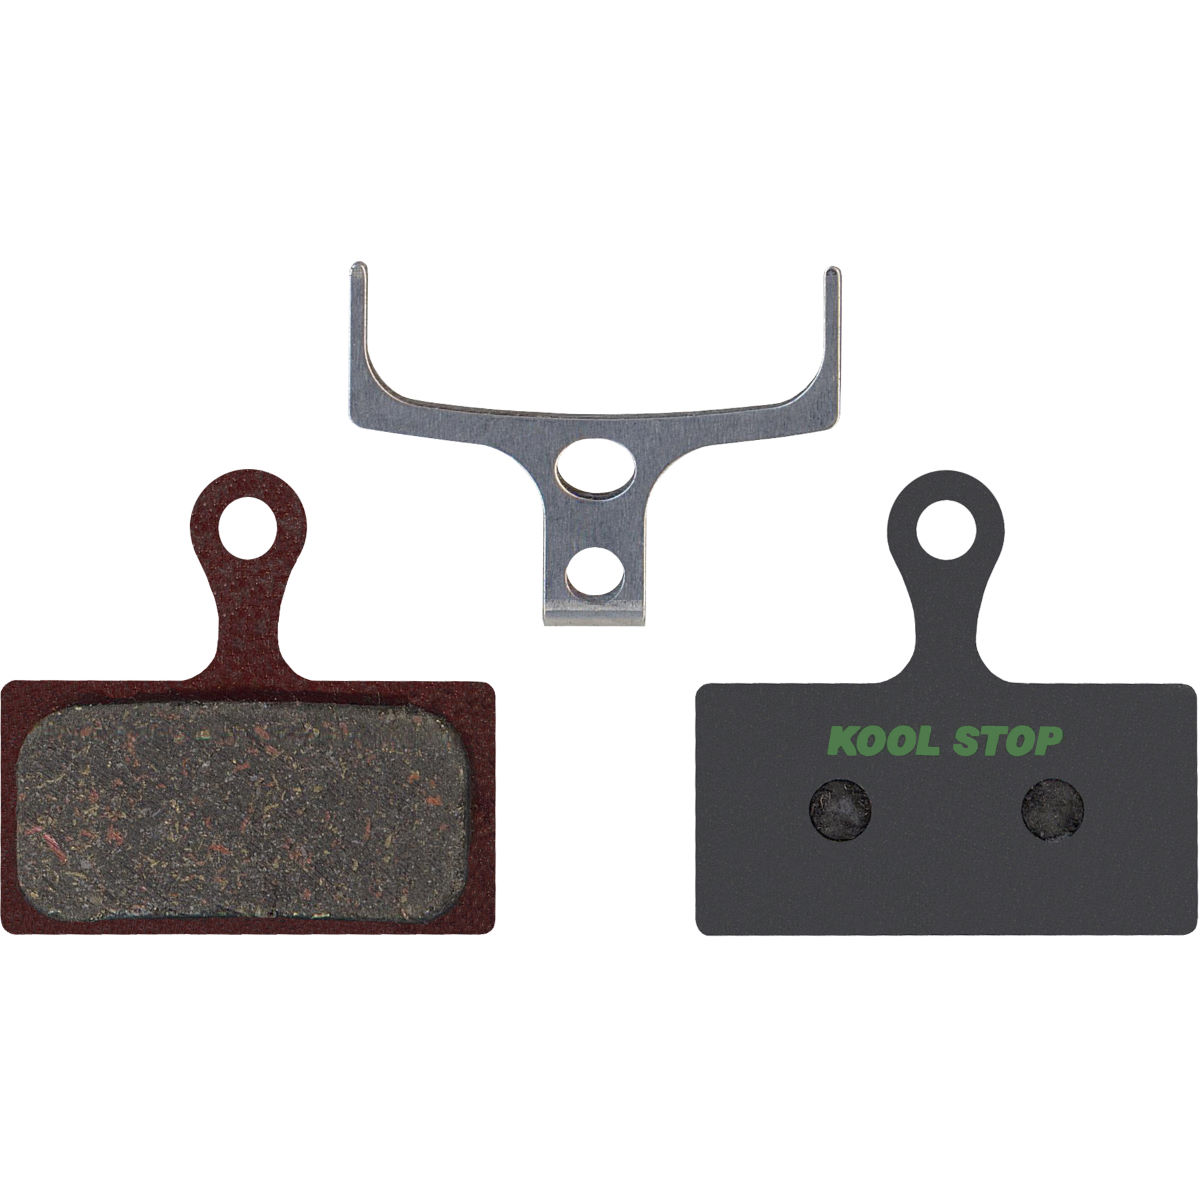 Kool Stop Kool Stop D635E SHIM XT for E-bike   Disc Brake Pads